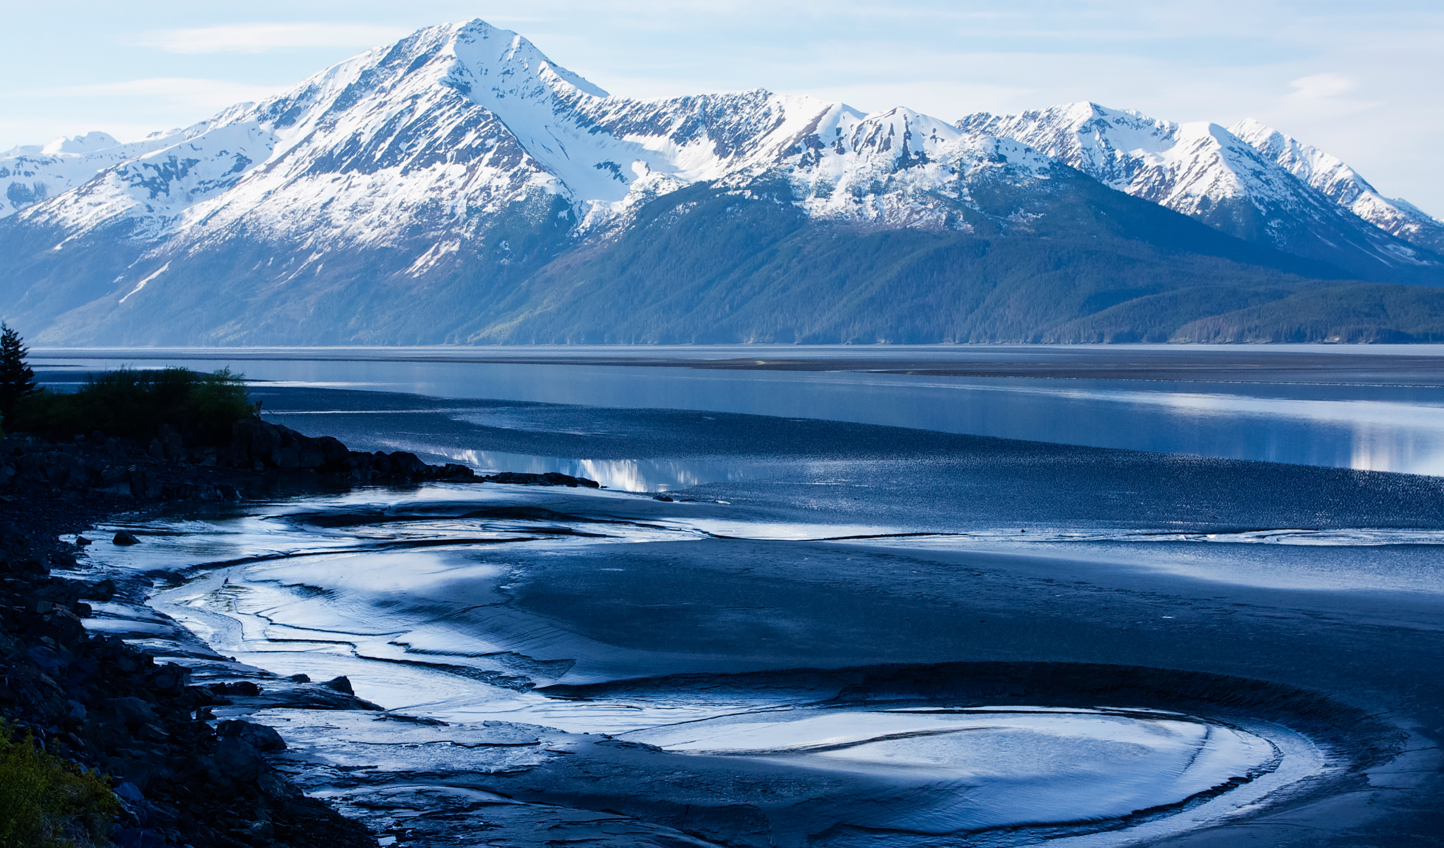 Follow every twist and turn of Turnagain Arm